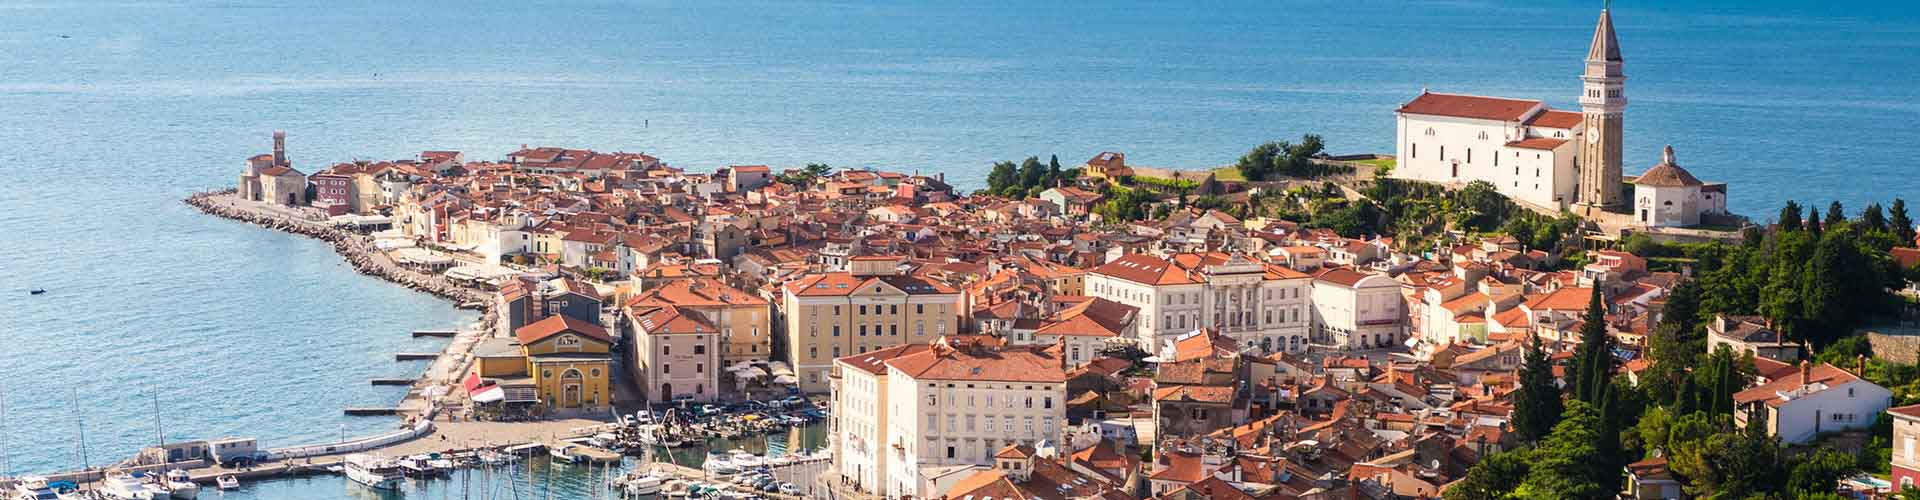 Piran – Hostels in Piran. Maps for Piran, Photos and Reviews for each hostel in Piran.